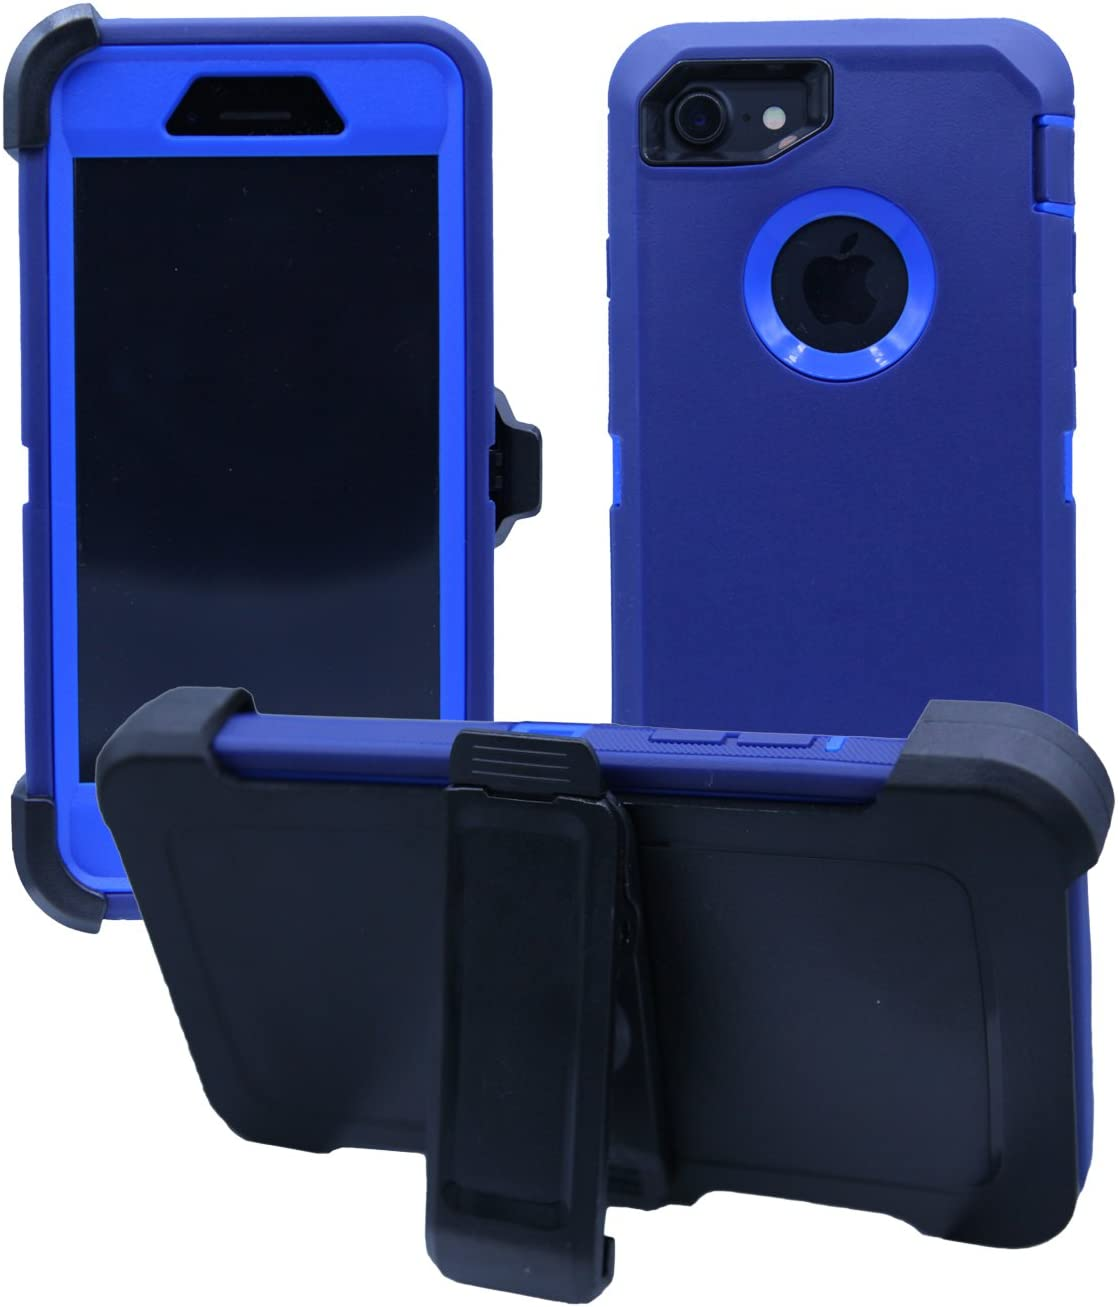 iPhone 7 / iPhone 8 Cover | 2-in-1 Screen Protector & Holster Case | Full Body Military Grade Edge-to-Edge Protection with carrying belt clip | Drop Proof Shockproof Dustproof | Navy Blue / Blue